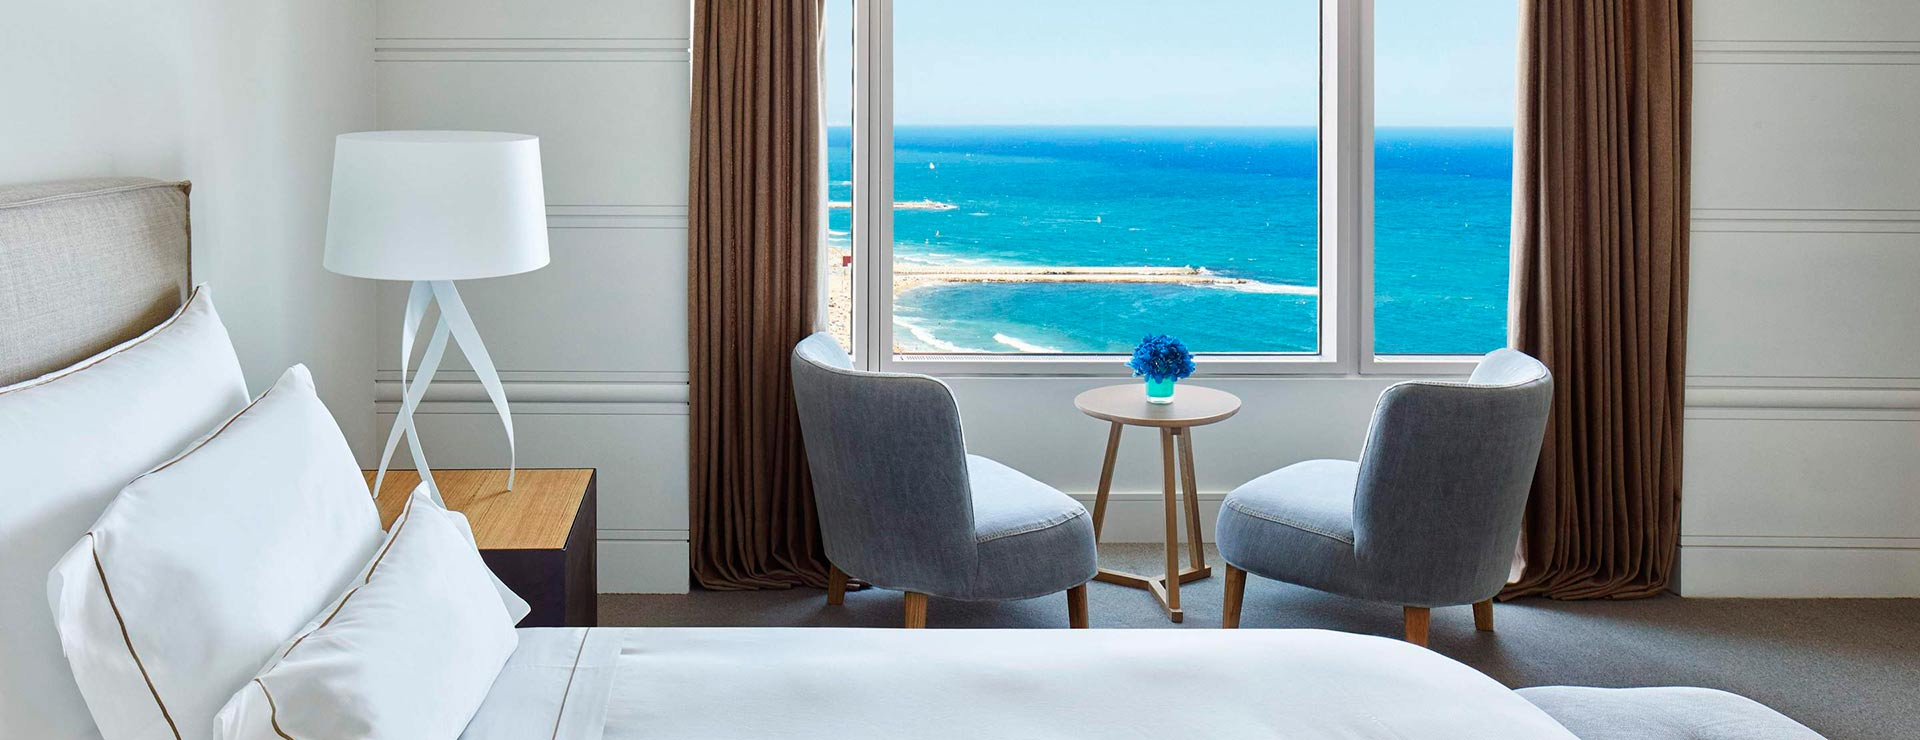 Wake up to exceptional views